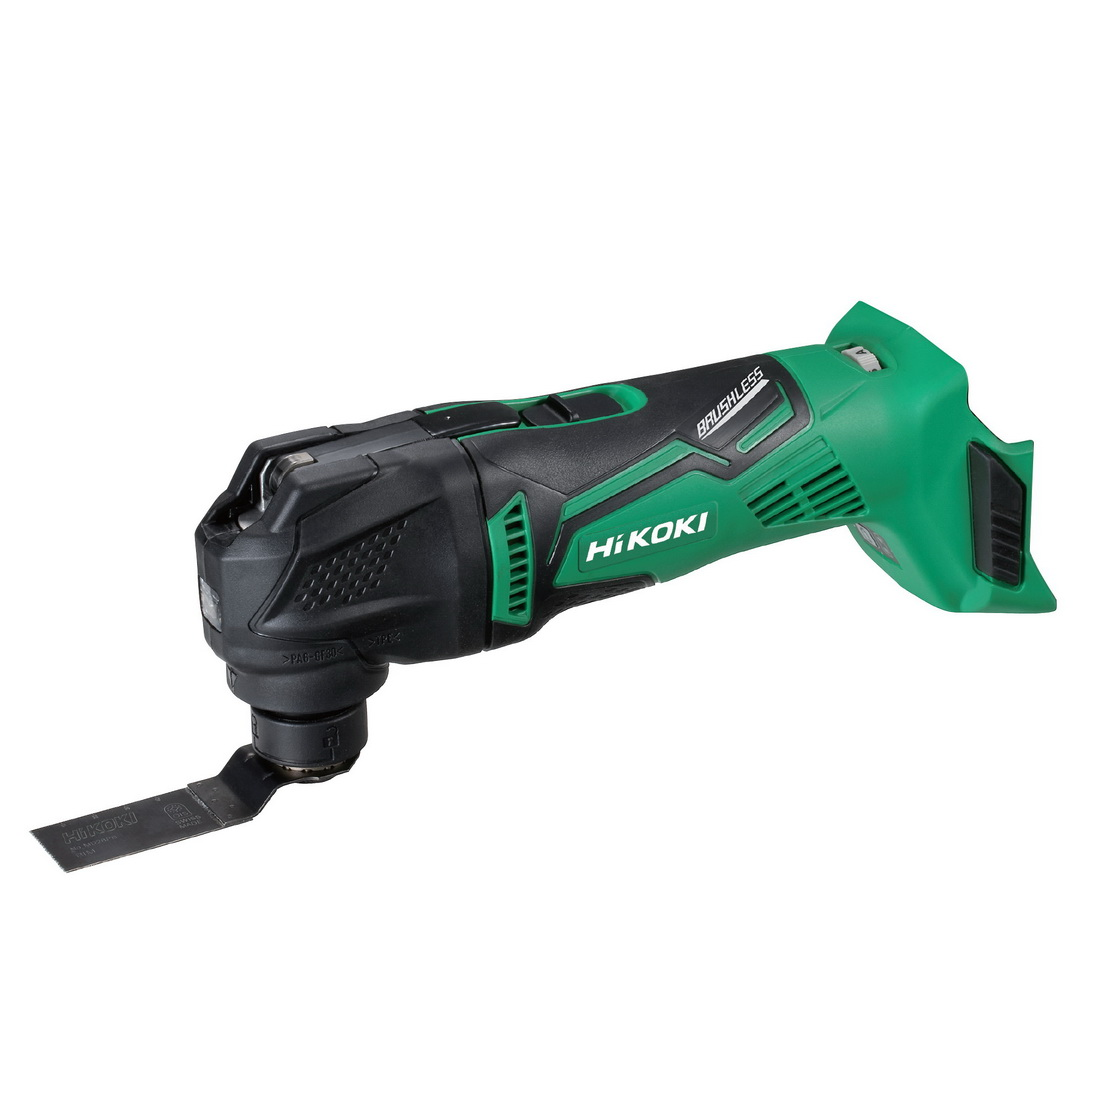 18V Lithium-Ion Cordless Brushless Multi Tool Skin with 12-Piece Accessory Set